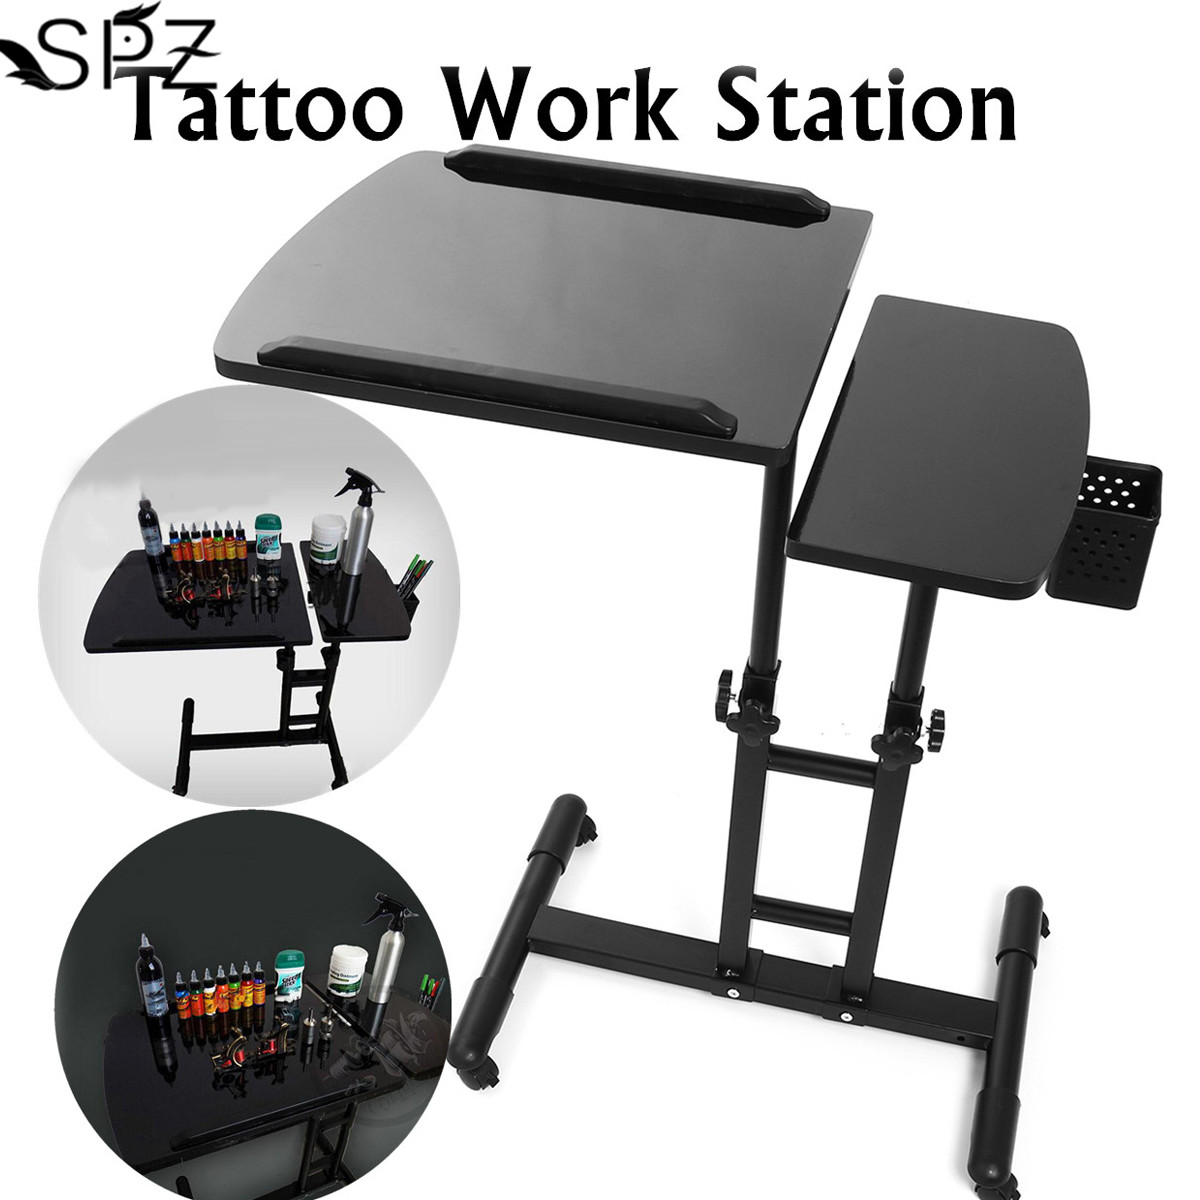 65-97cm Black Adjustable Tattoo Work Desk Table Multifunctional Tattoo Tracing Drawing Tattooist Work Station Stand Portable